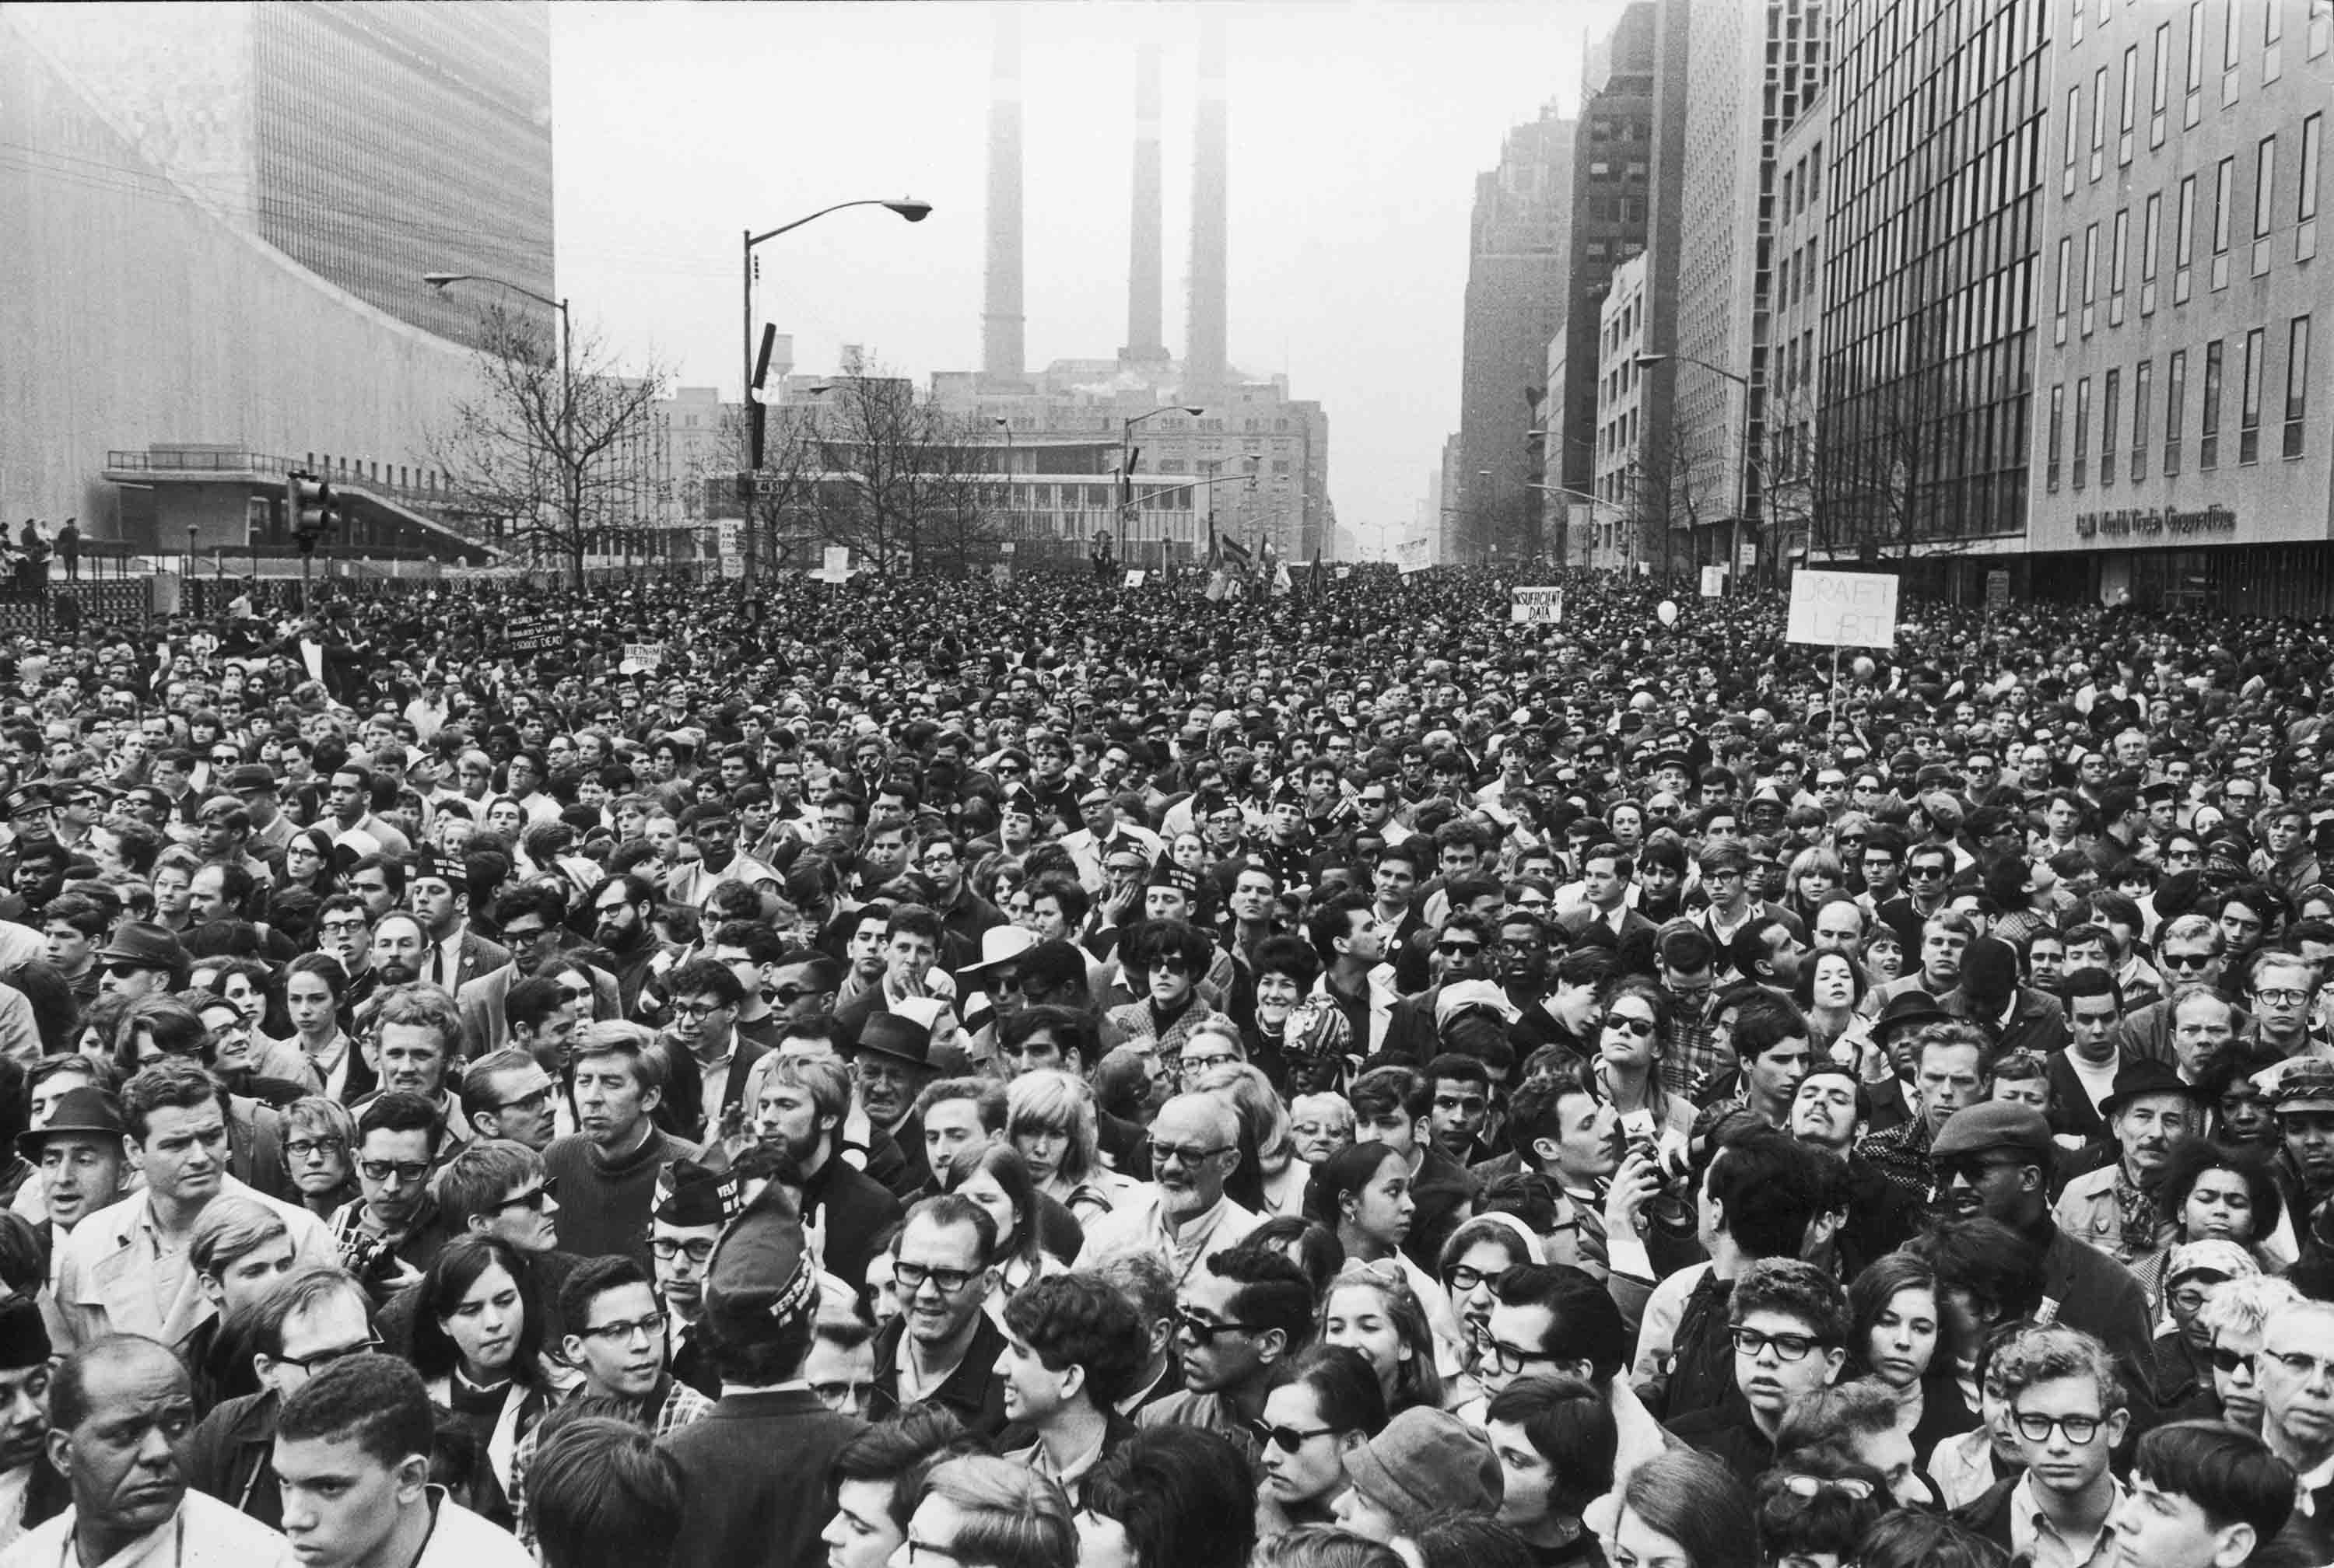 March Against the War in Vietnam, NYC, April 15, 1967